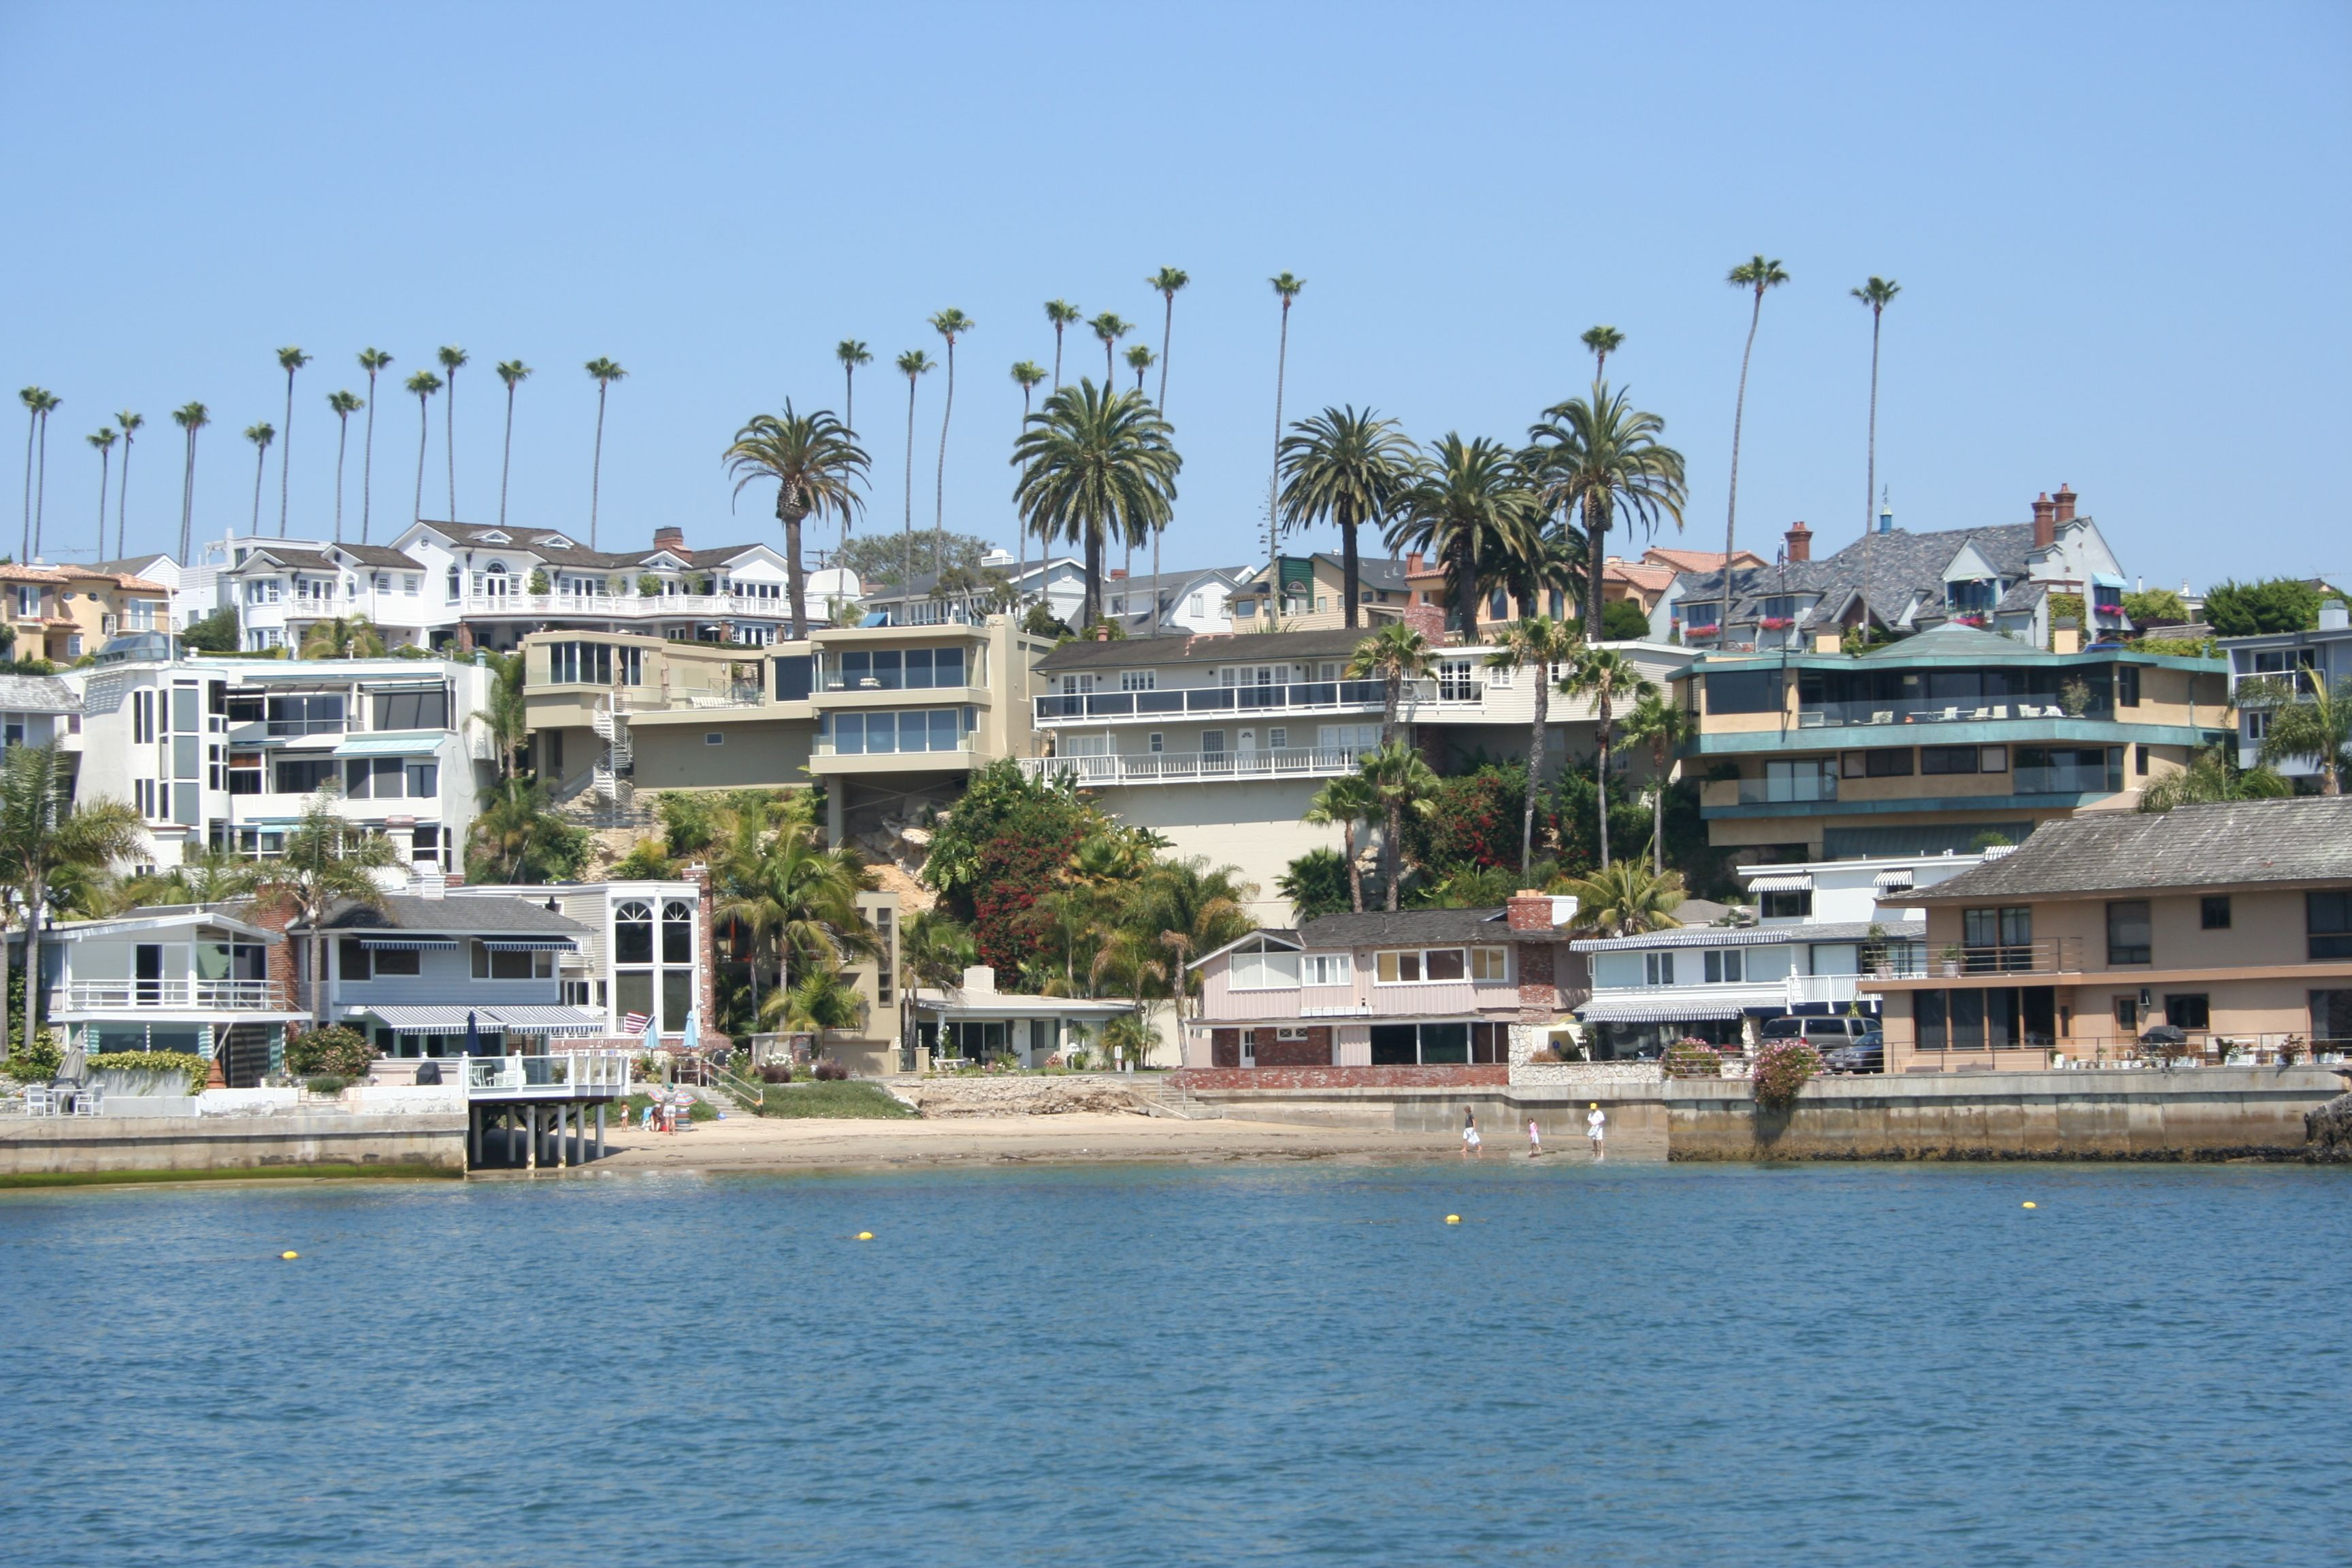 Homes on China Cove in Corona del Mar as viewed from the Main Channel of Newport Harbor.